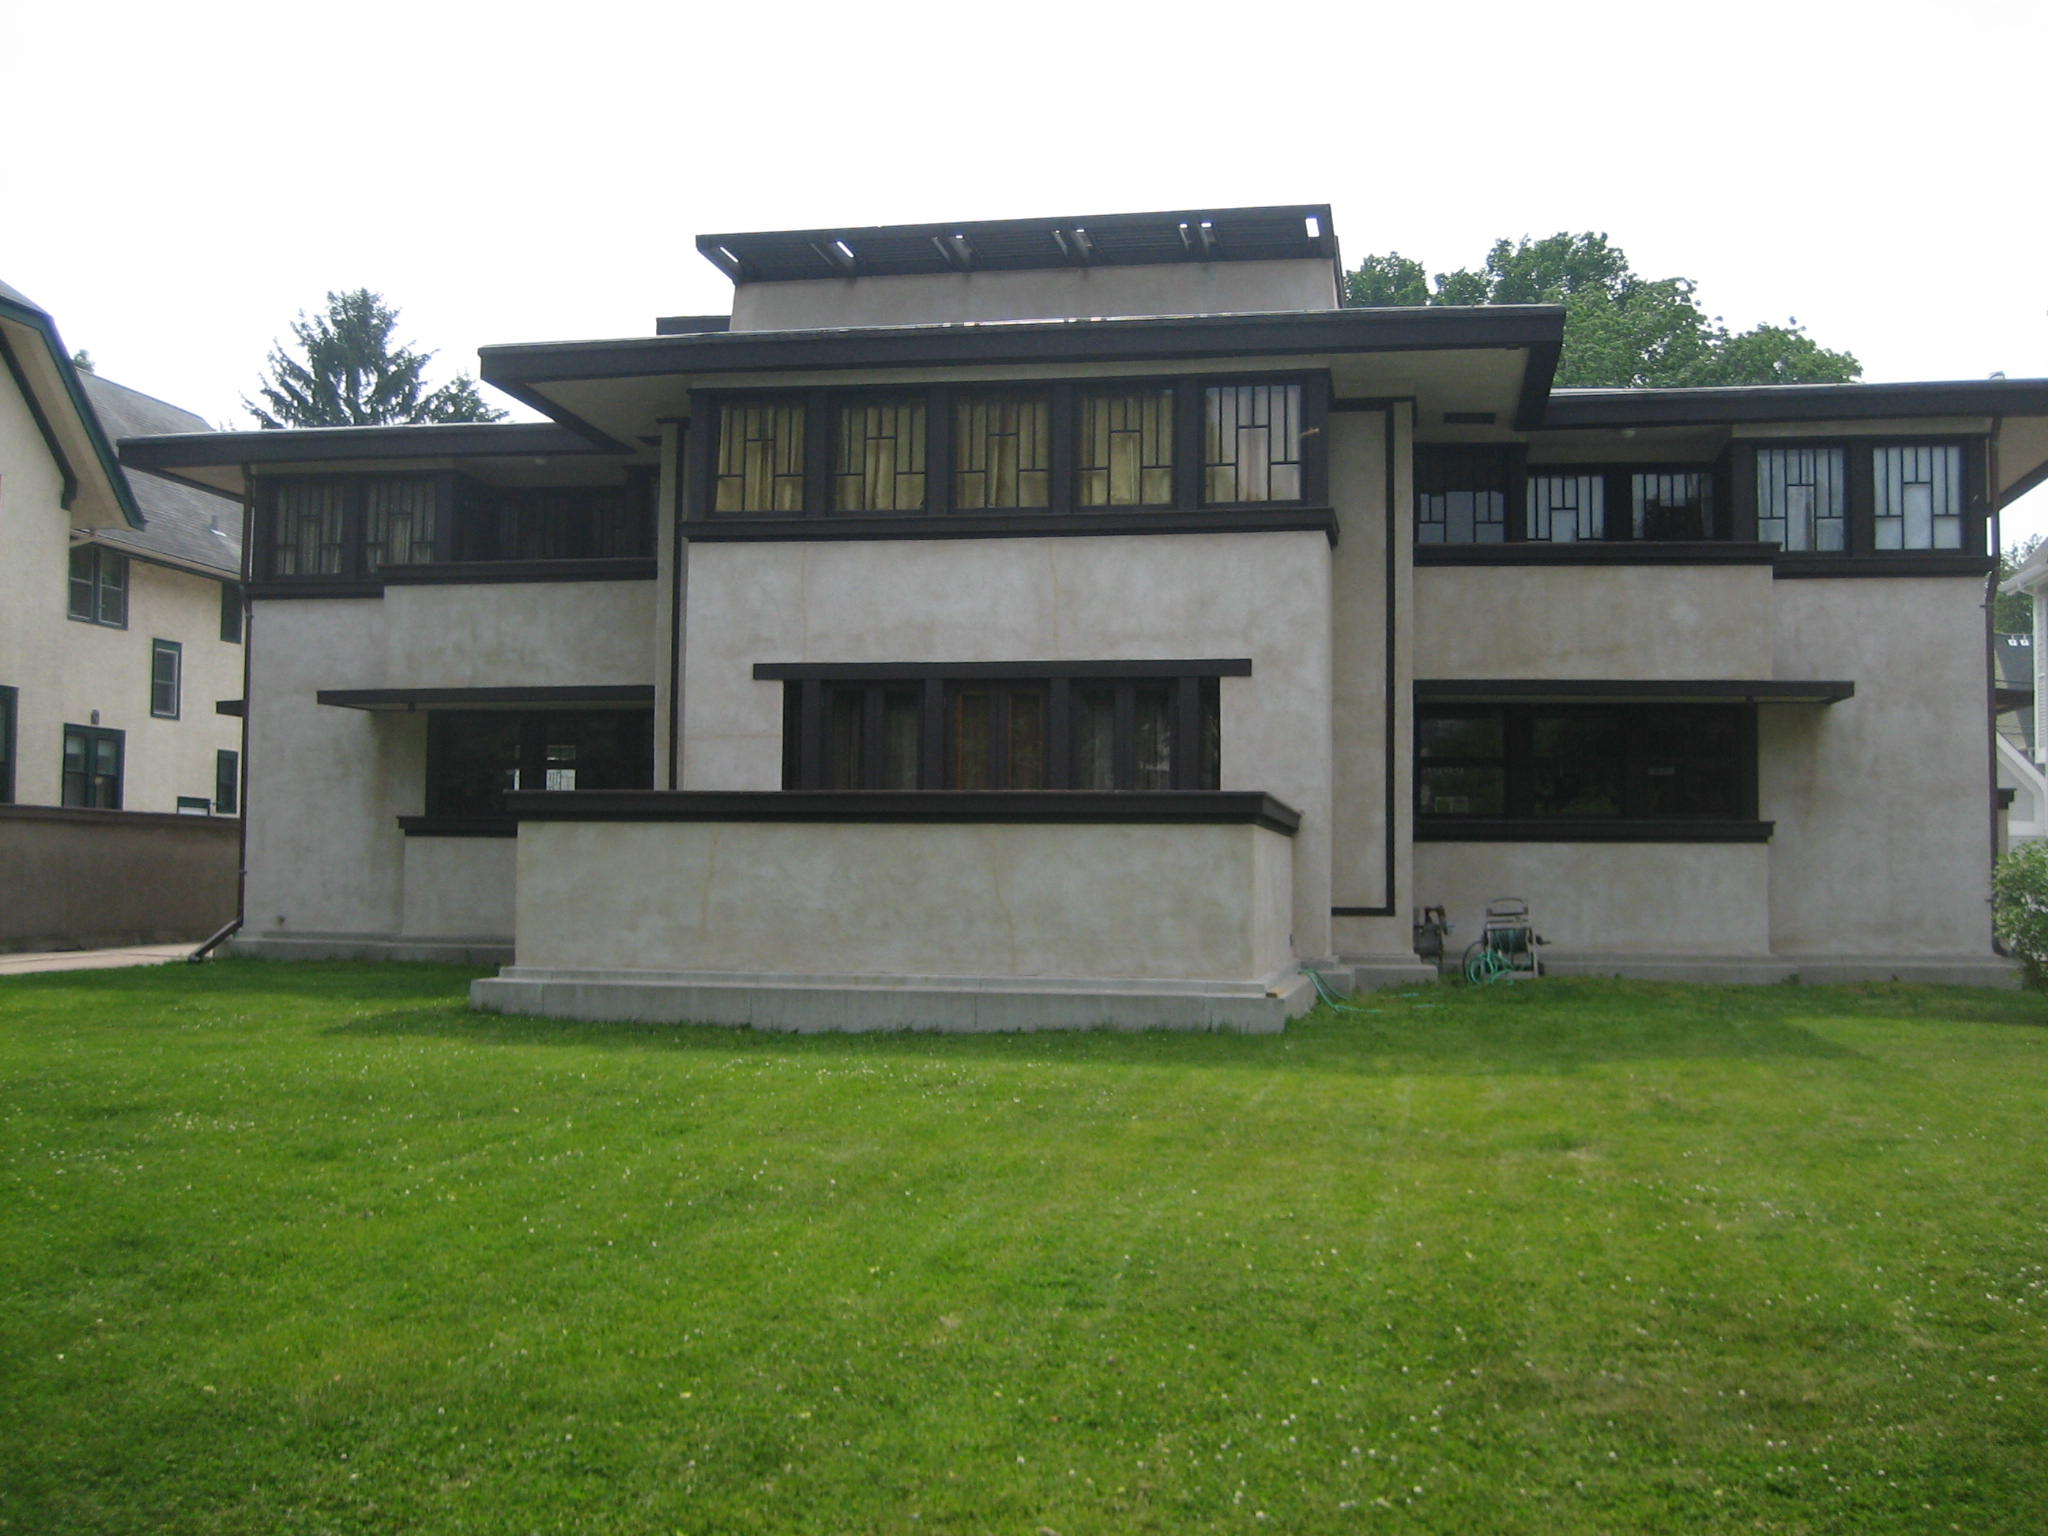 Modern Architecture Frank Lloyd Wright frank lloyd wright–prairie school of architecture historic